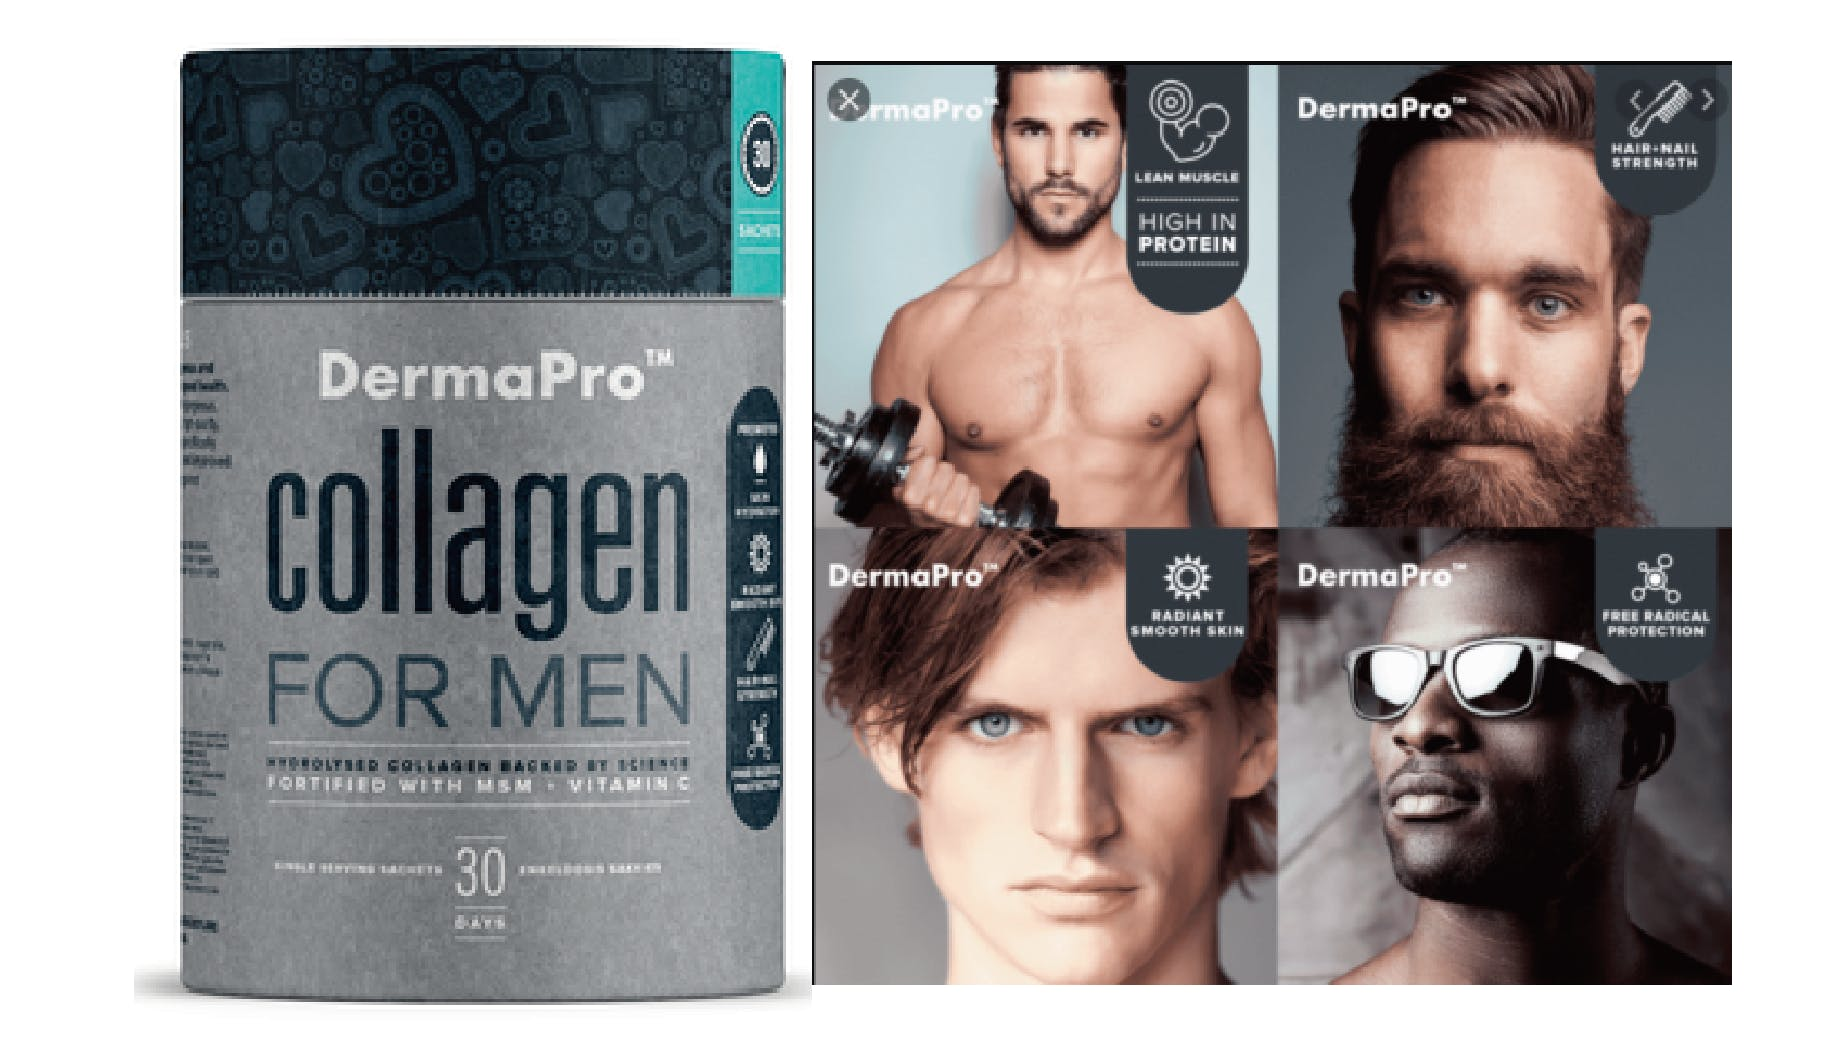 More and more men are taking collagen